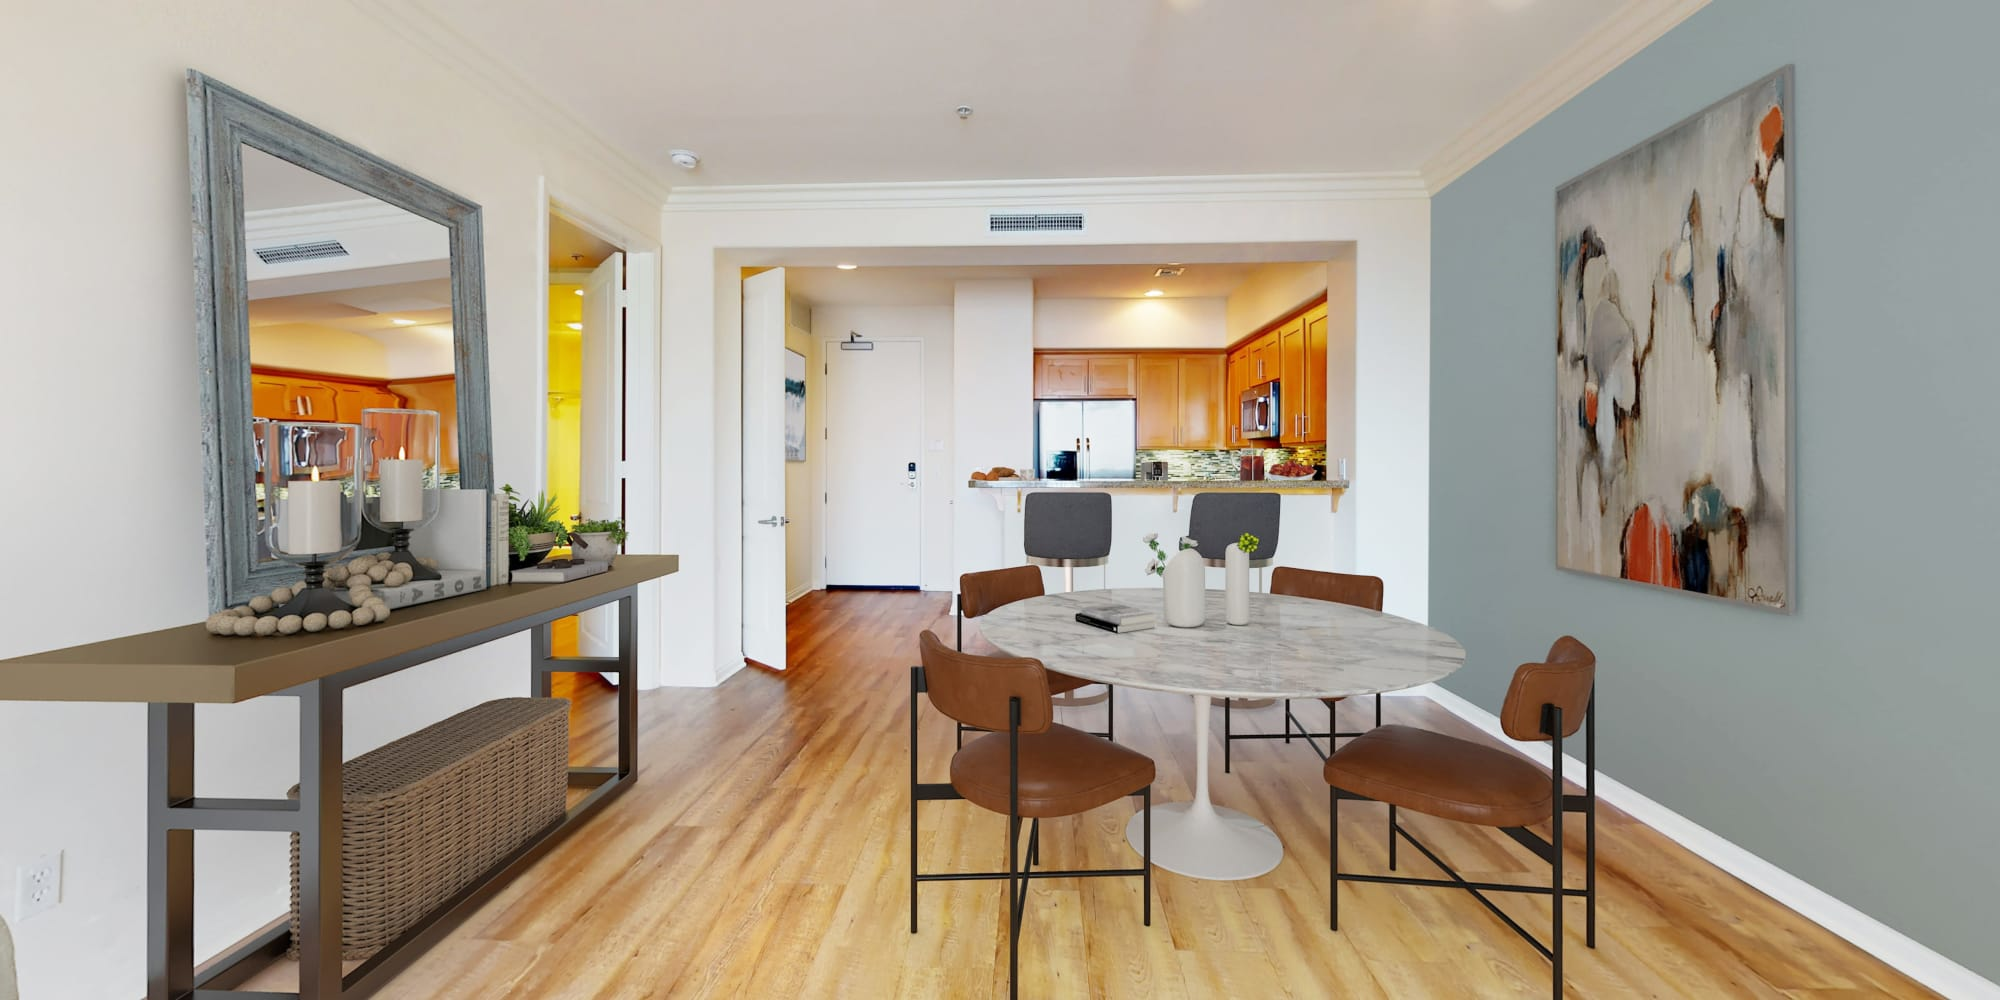 Plank flooring, granite countertops and stainless steel appliances at The Villa at Marina Harbor in Marina del Rey, California